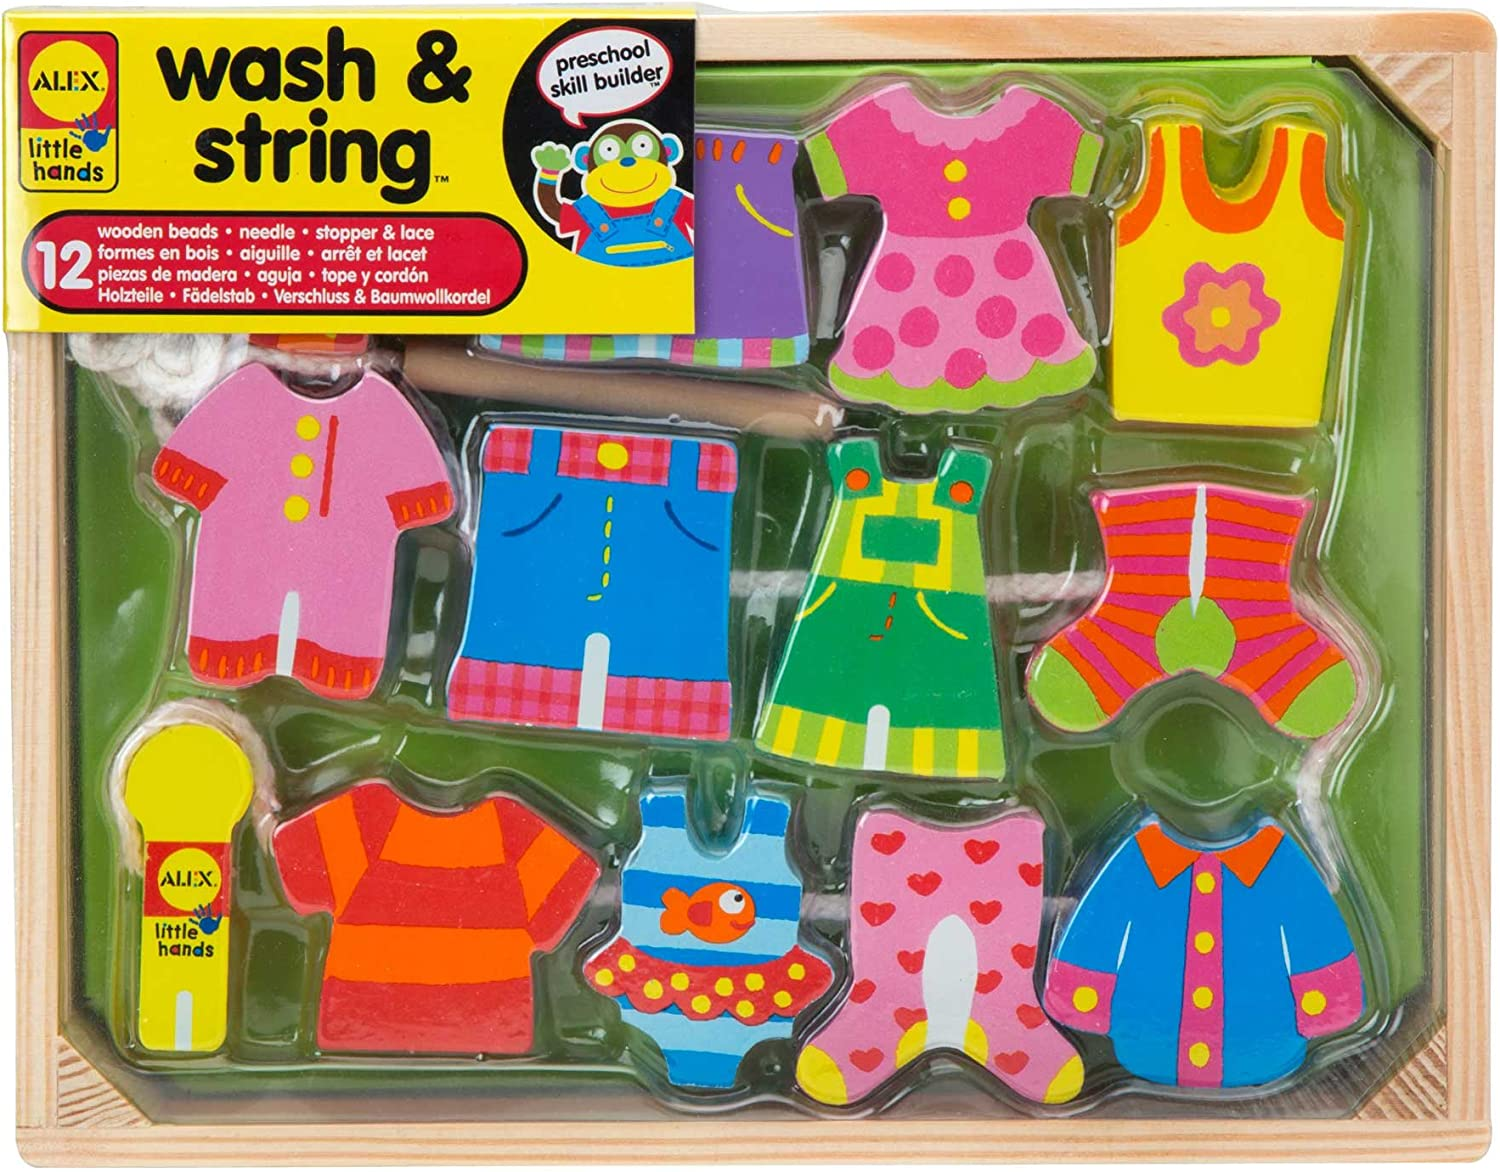 ALEX Toys  Early Learning Wash & String  Little Hands 1486W